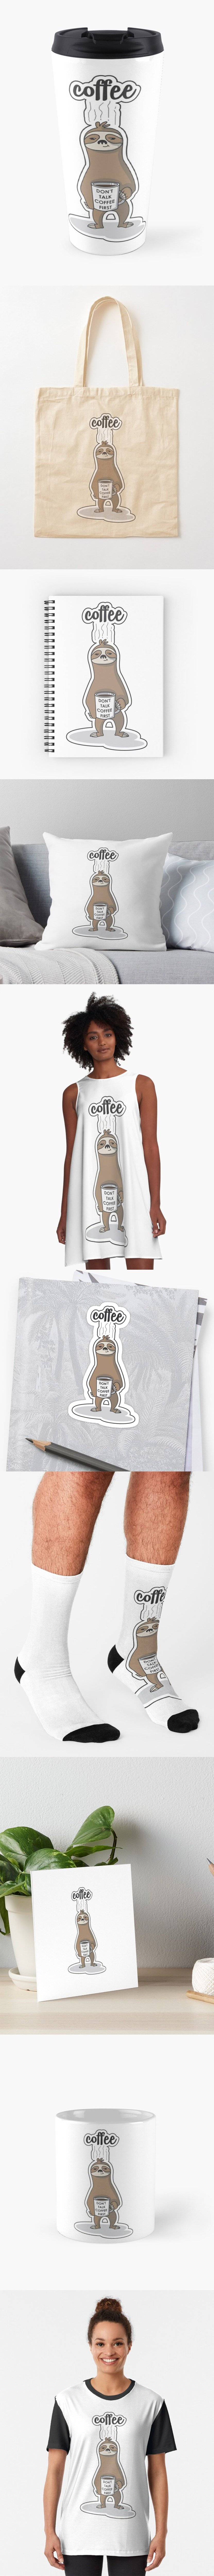 Find your thing only on #redbubble BY: #babyGnom.. #coffeelovers, #coffee, #coffeelover, #sloth, #lazy, #sleepy, #sleep, #lazysloth, #slothtshirt, #donttalkcoffeefirst, #cutesloth #coffeequotes